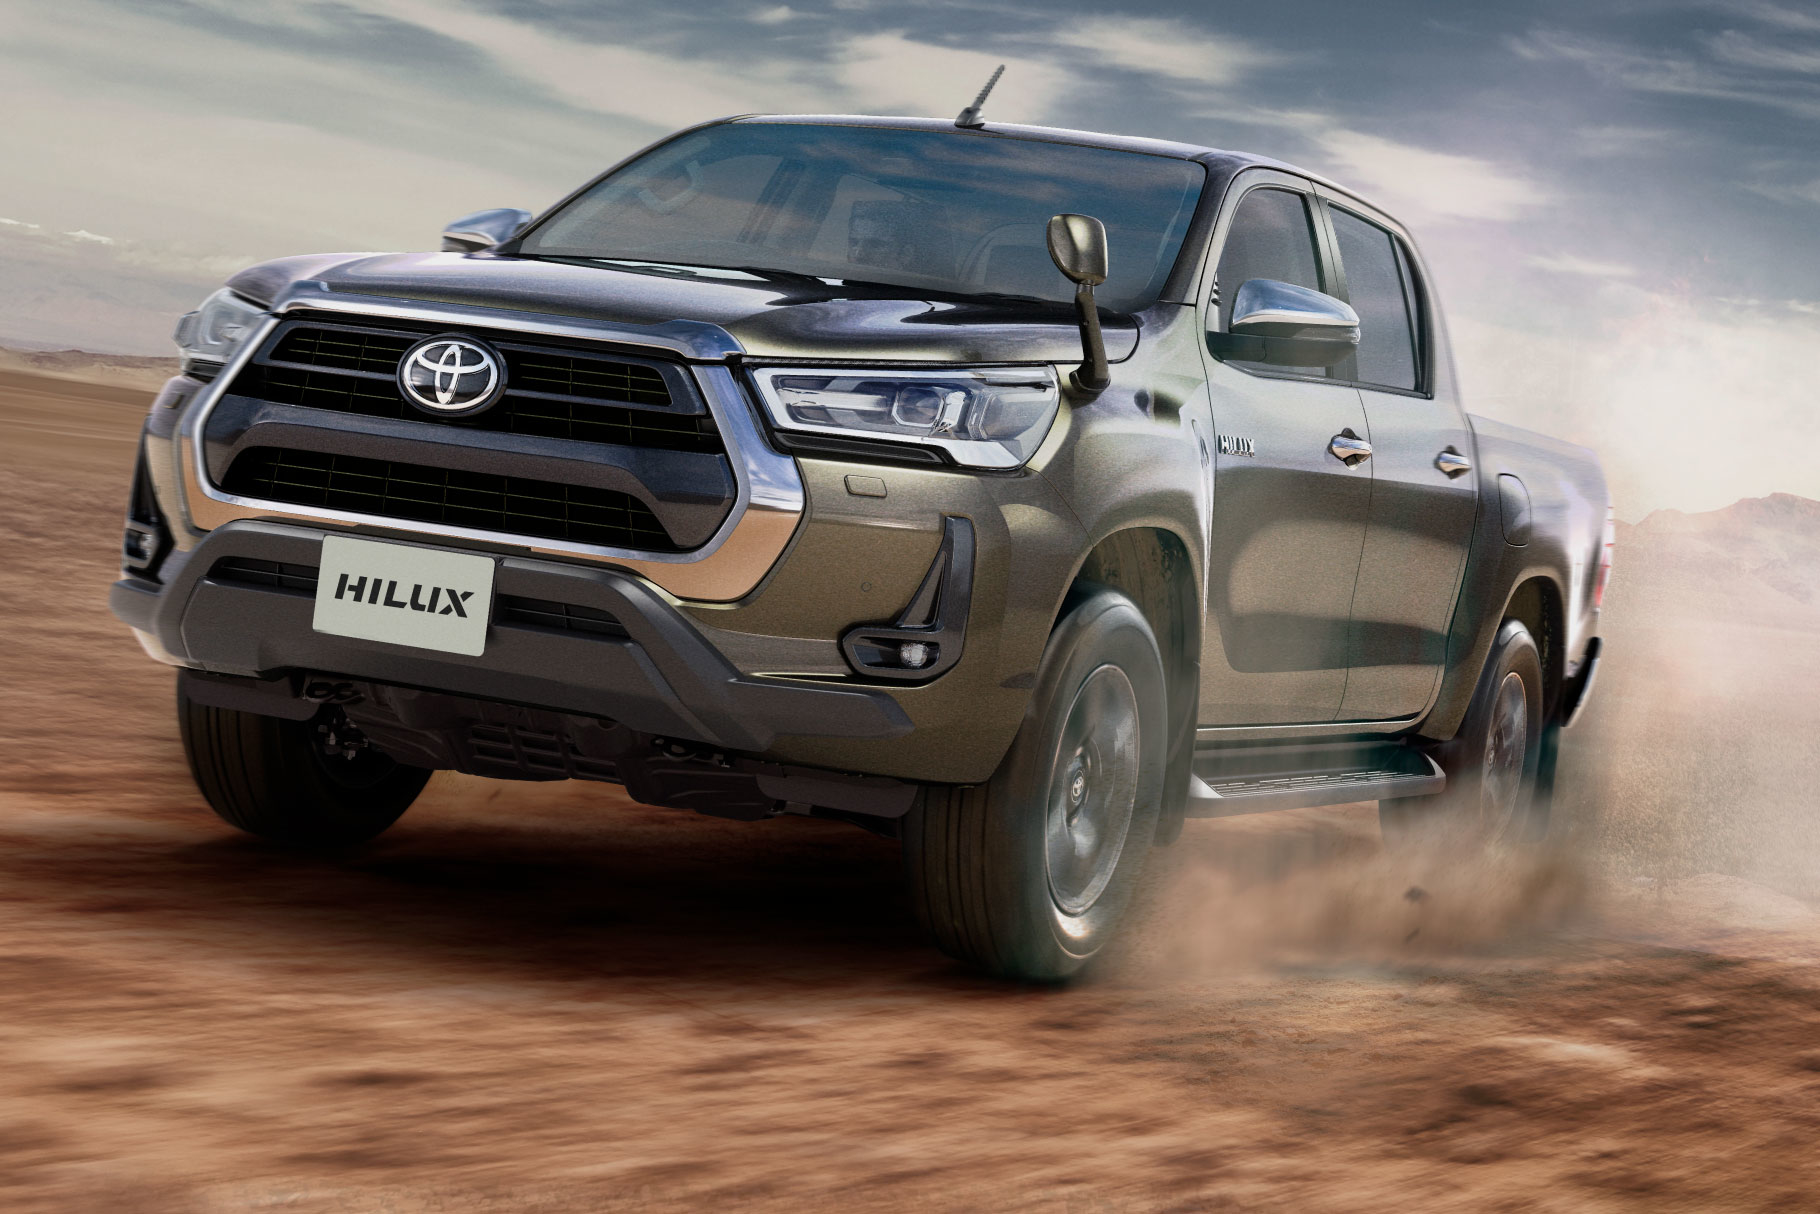 hilux_feature_img01